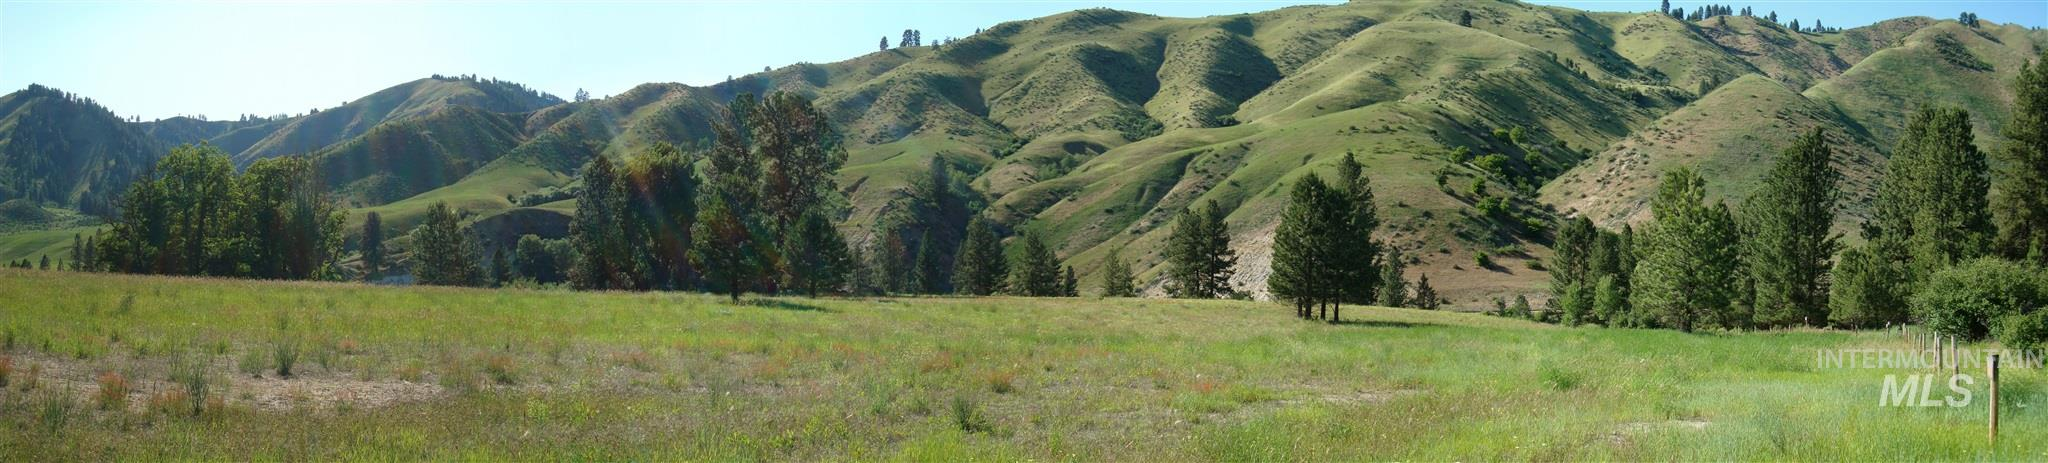 TBD Blk 1 Lot 2 Payette River Heights, Garden Valley, ID 83622